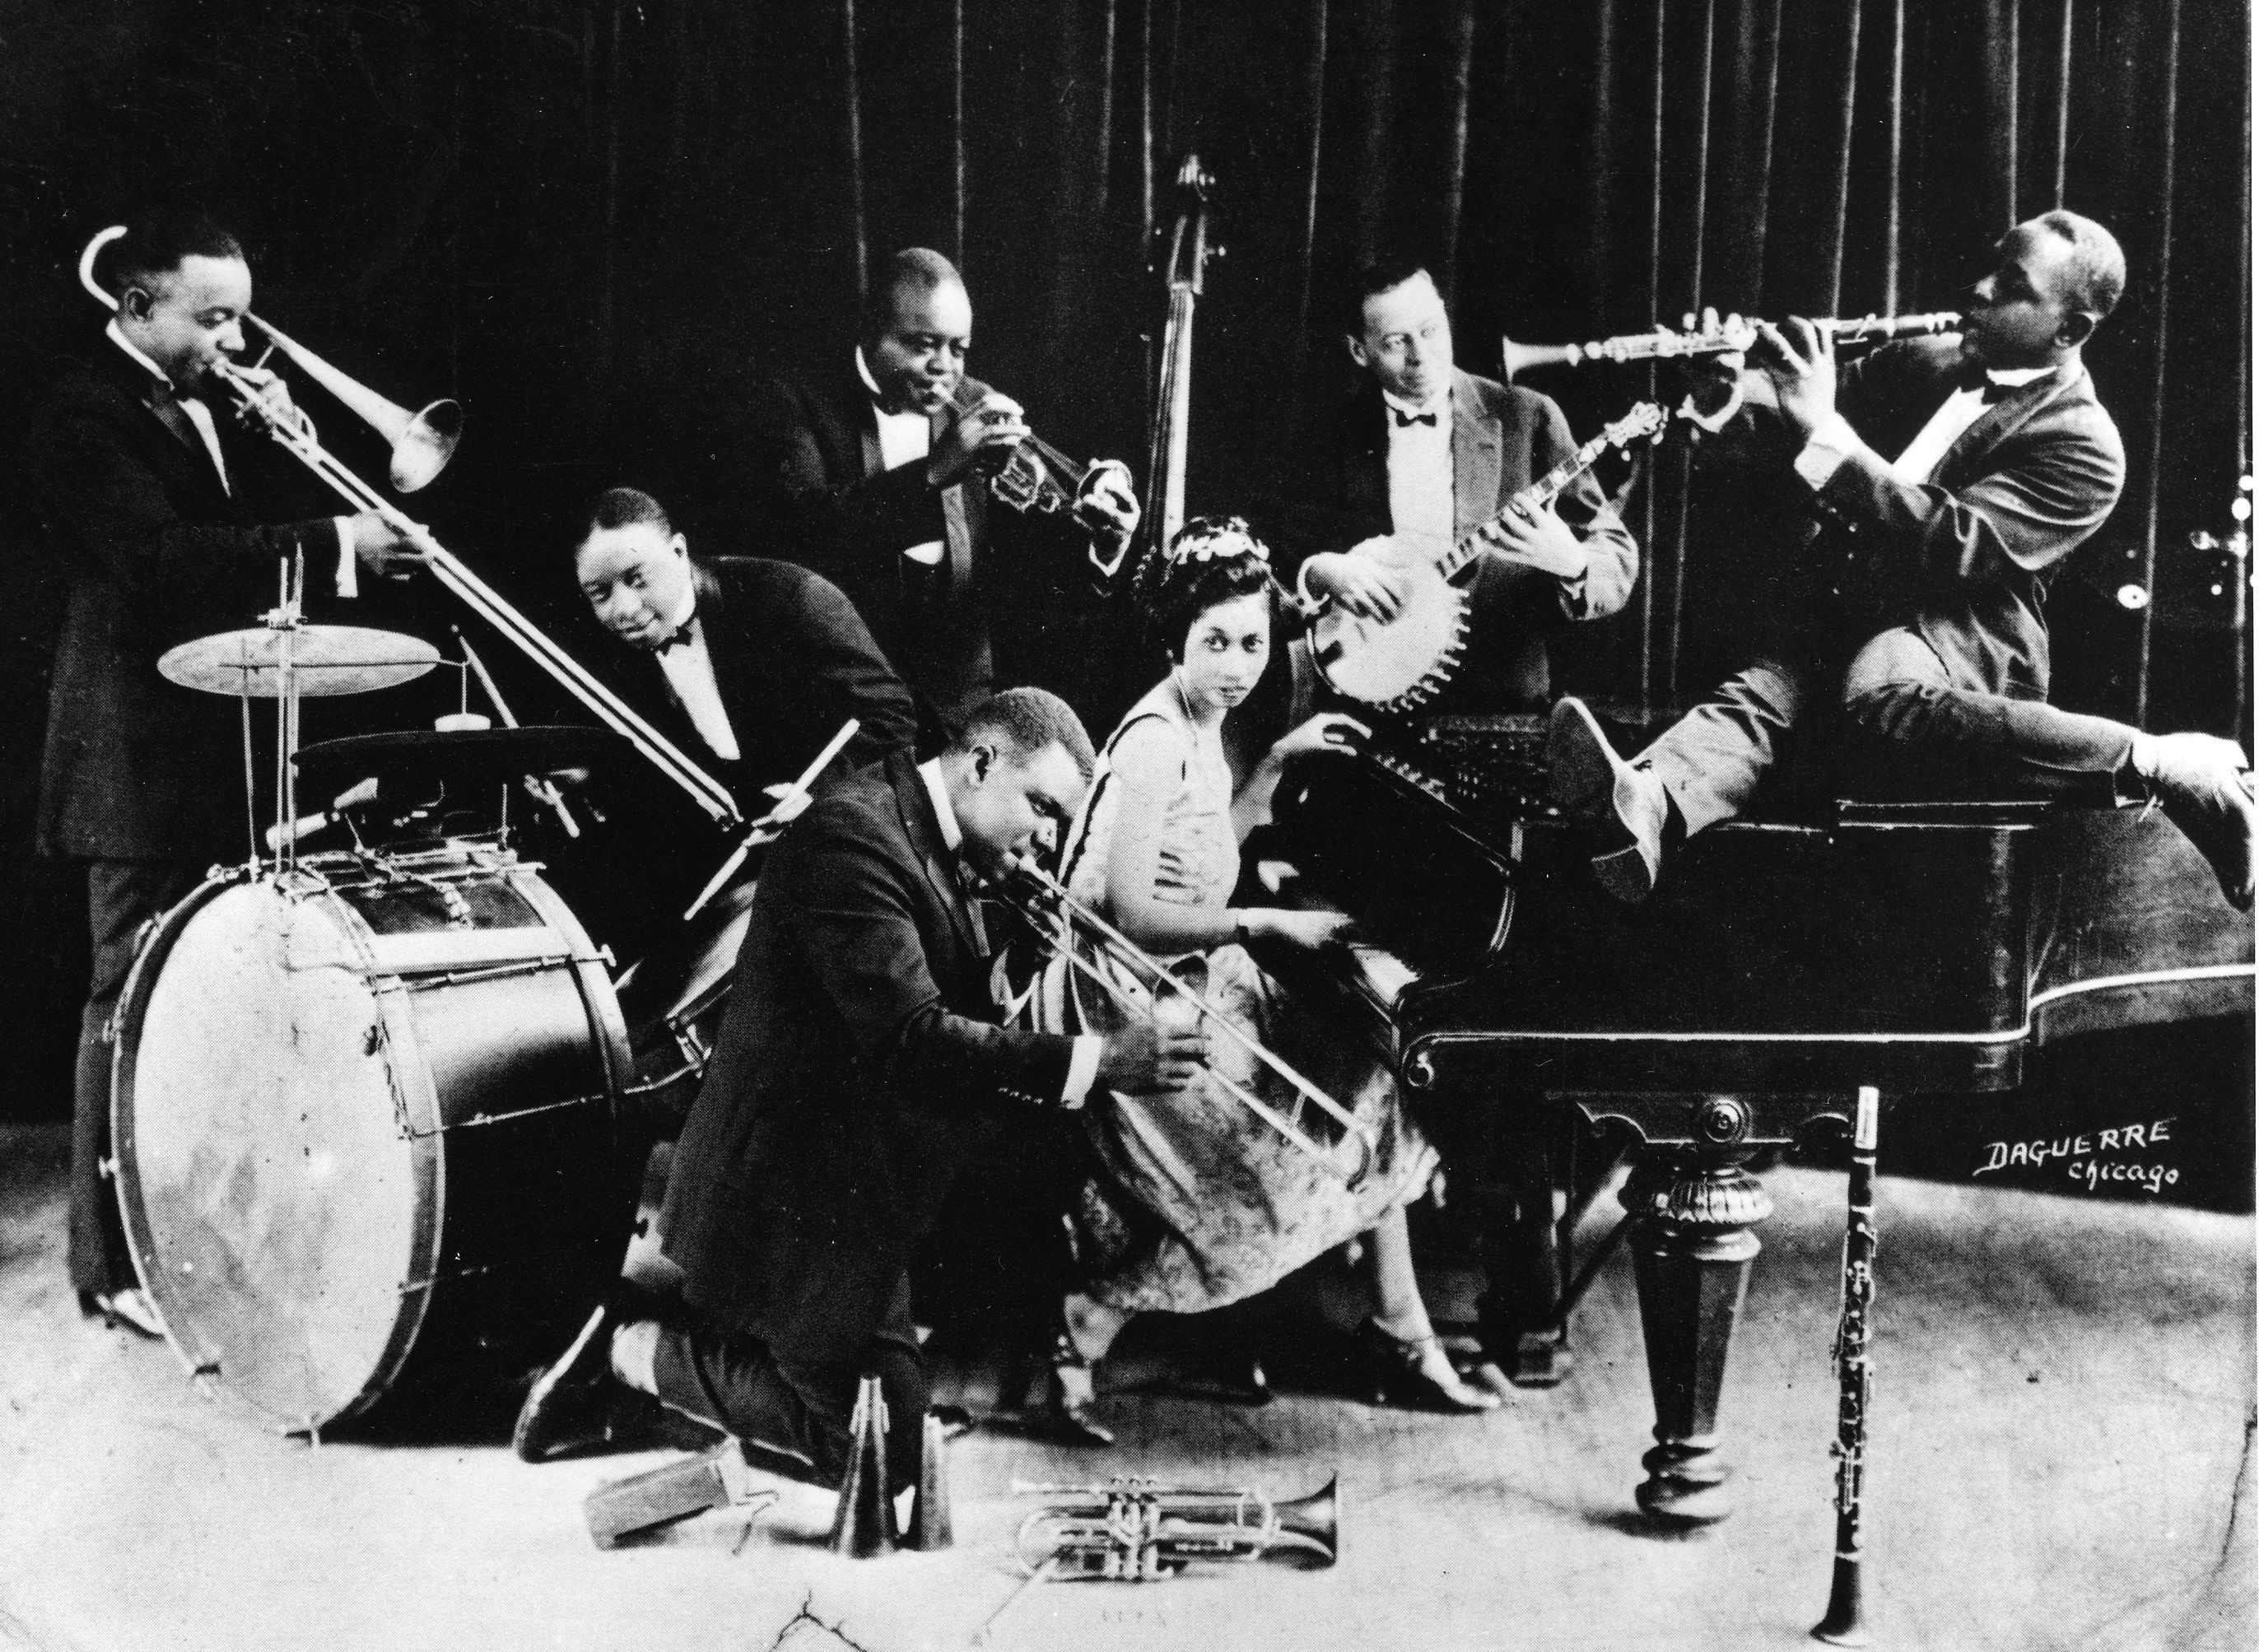 The 10 best jazz musicians | Culture | The Guardian